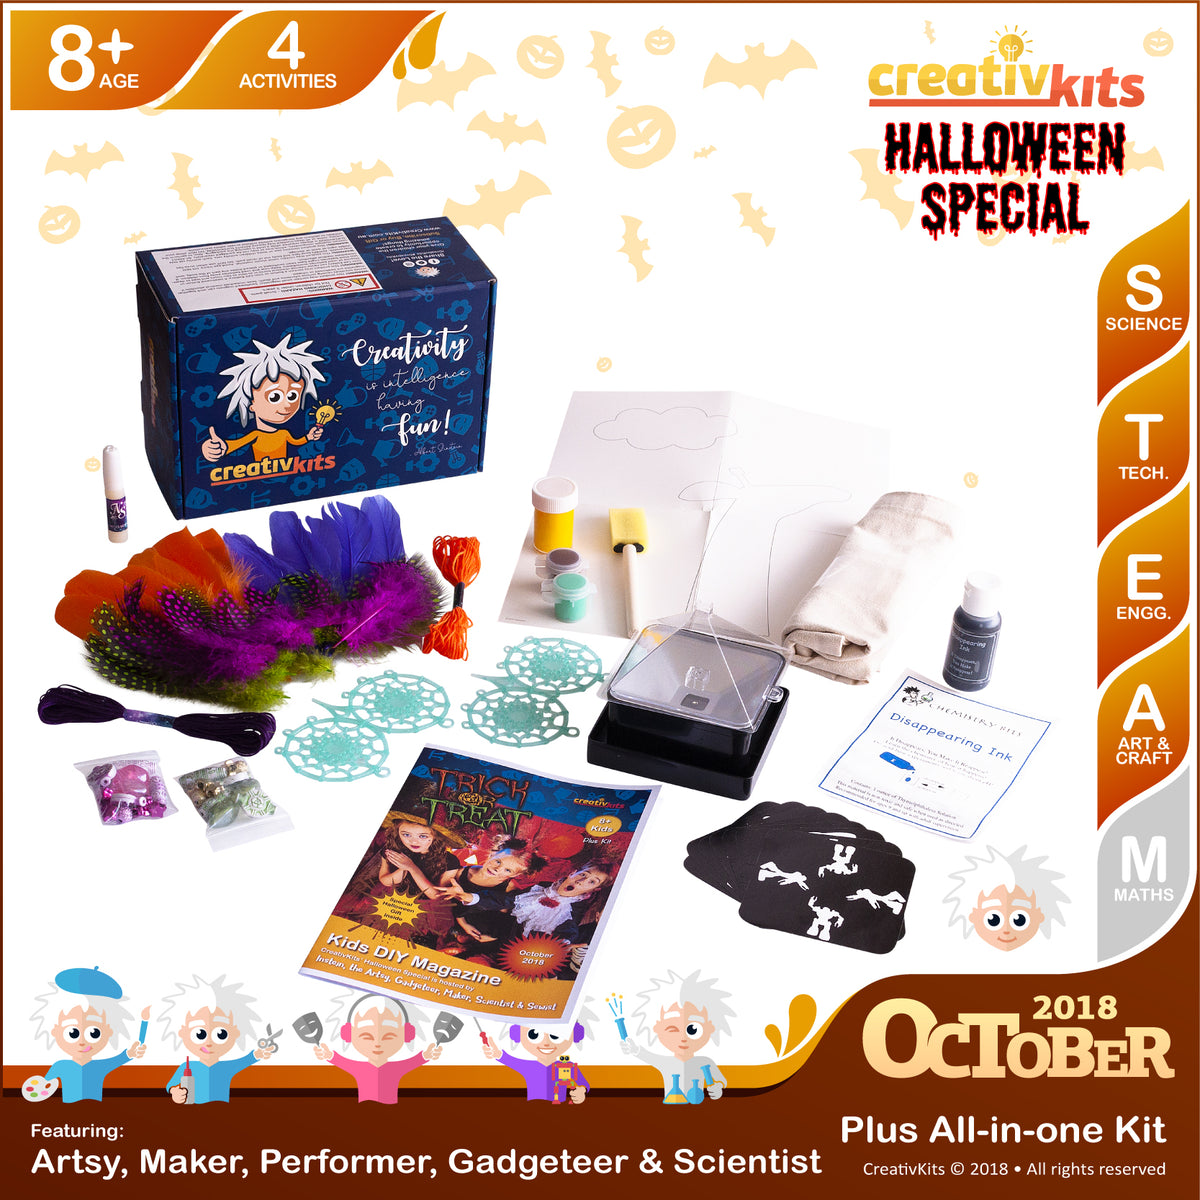 Hologram Projector, Trick/Treat Bags, Dreamcatchers and Disappearing Ink | October Plus Kit | Age 8+